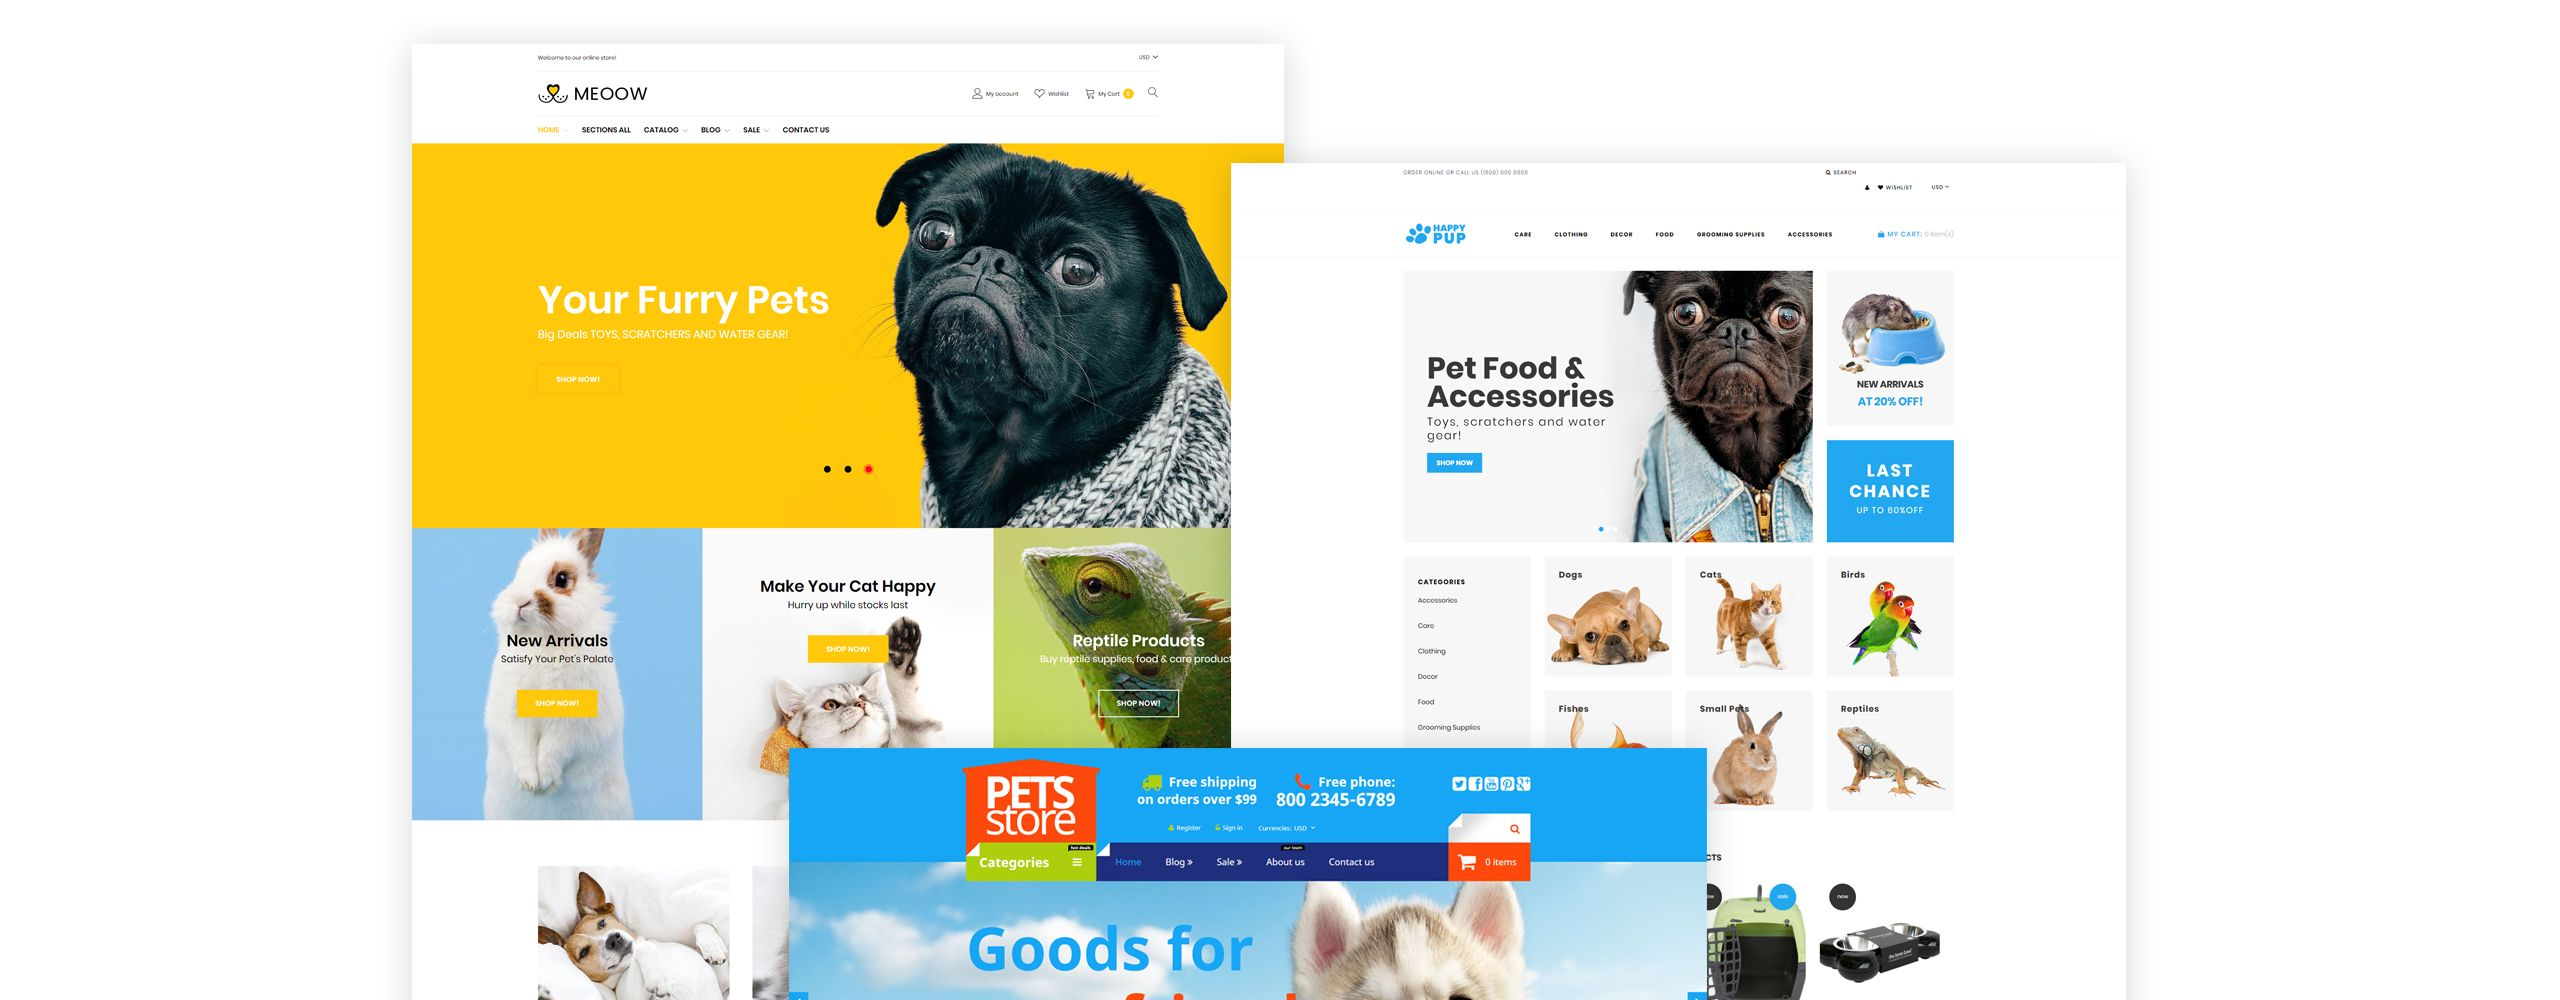 Medow Pet Food Dog And Cat Store Shopify Theme 78223 Food